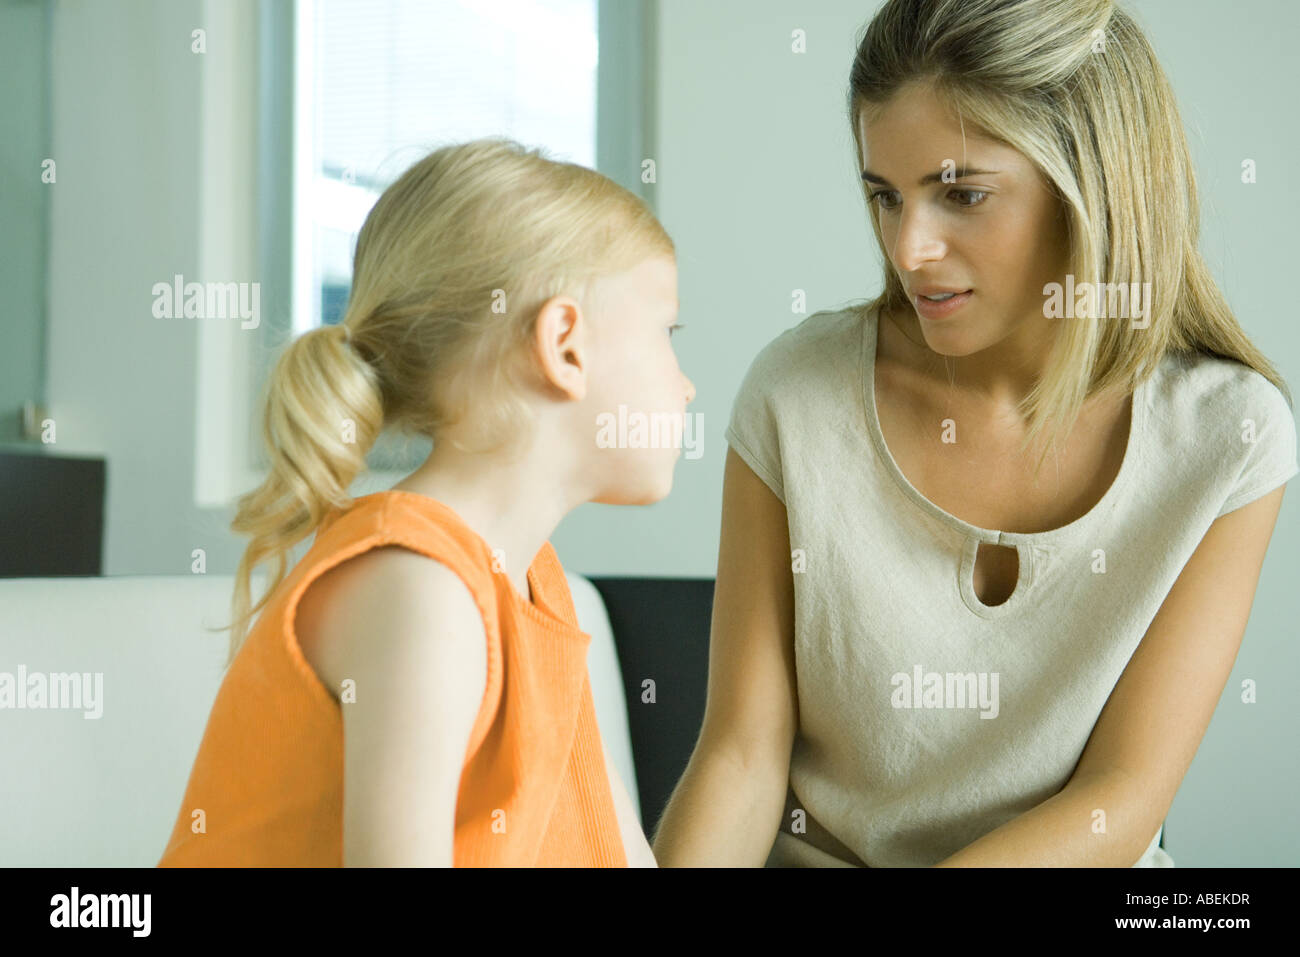 Mother and daughter talking together - Stock Image